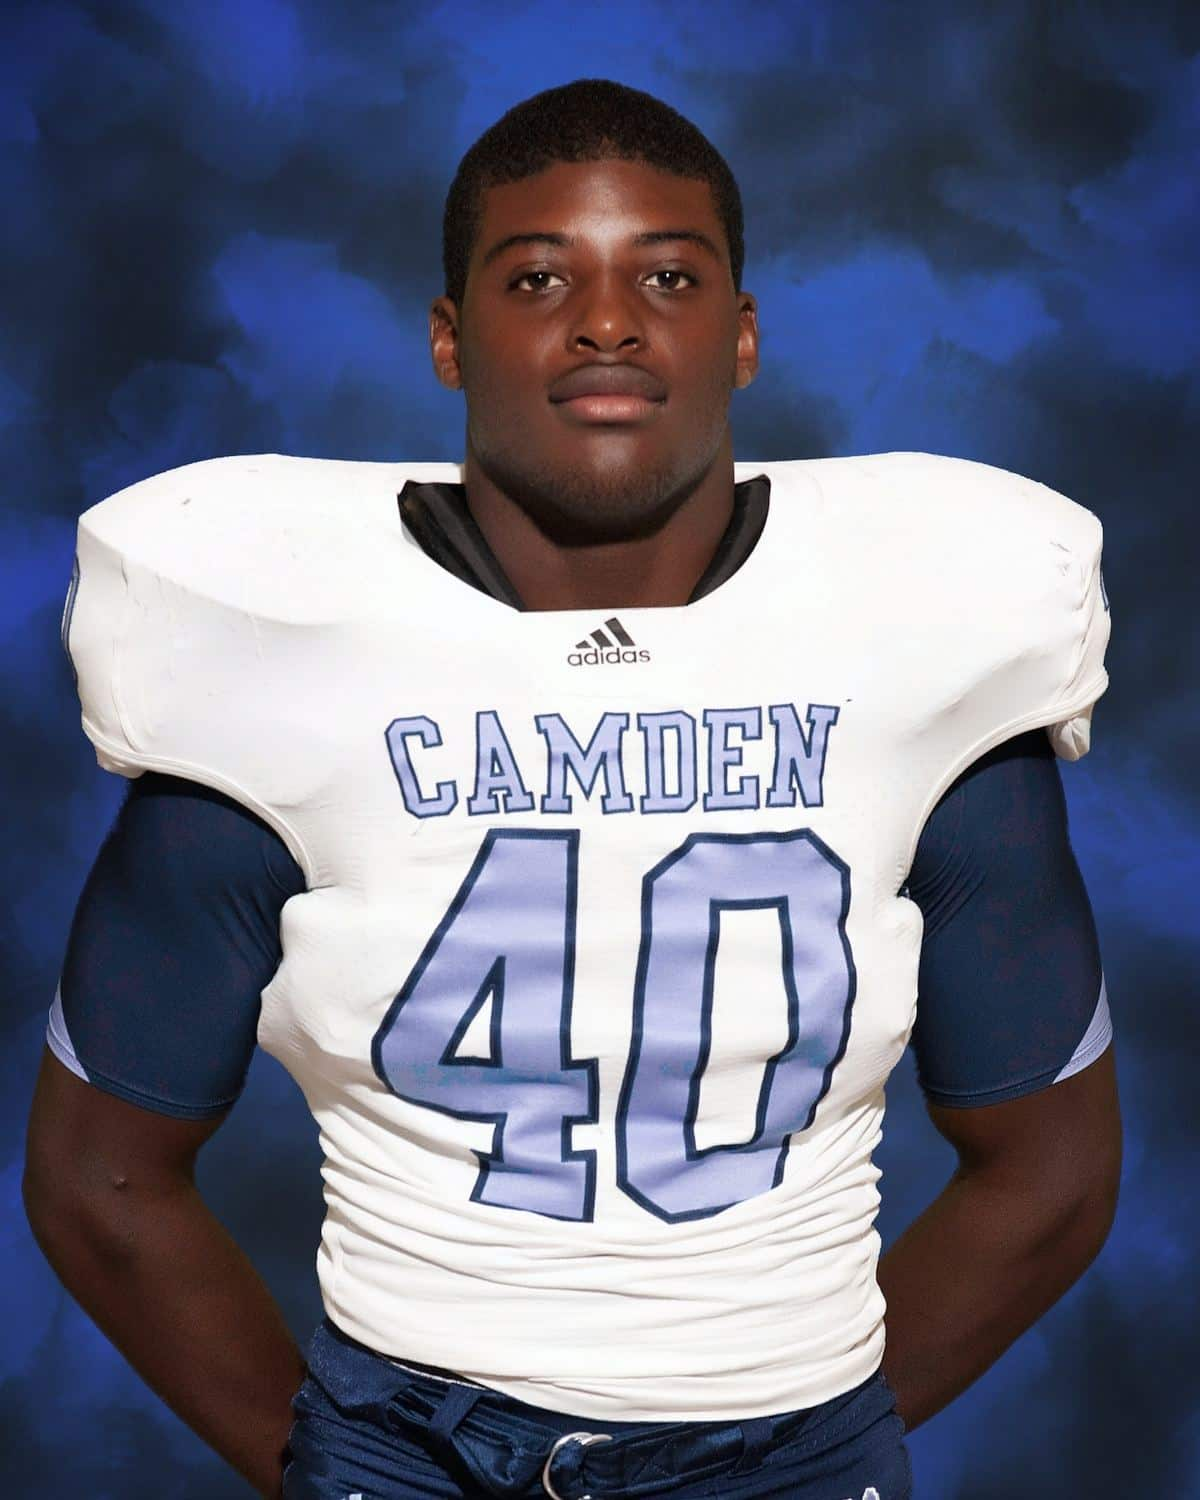 Gators linebacker signee Jarrad Davis made 116 total tackles and had three forced fumbles in his senior season at Camden County. / Courtesy photo